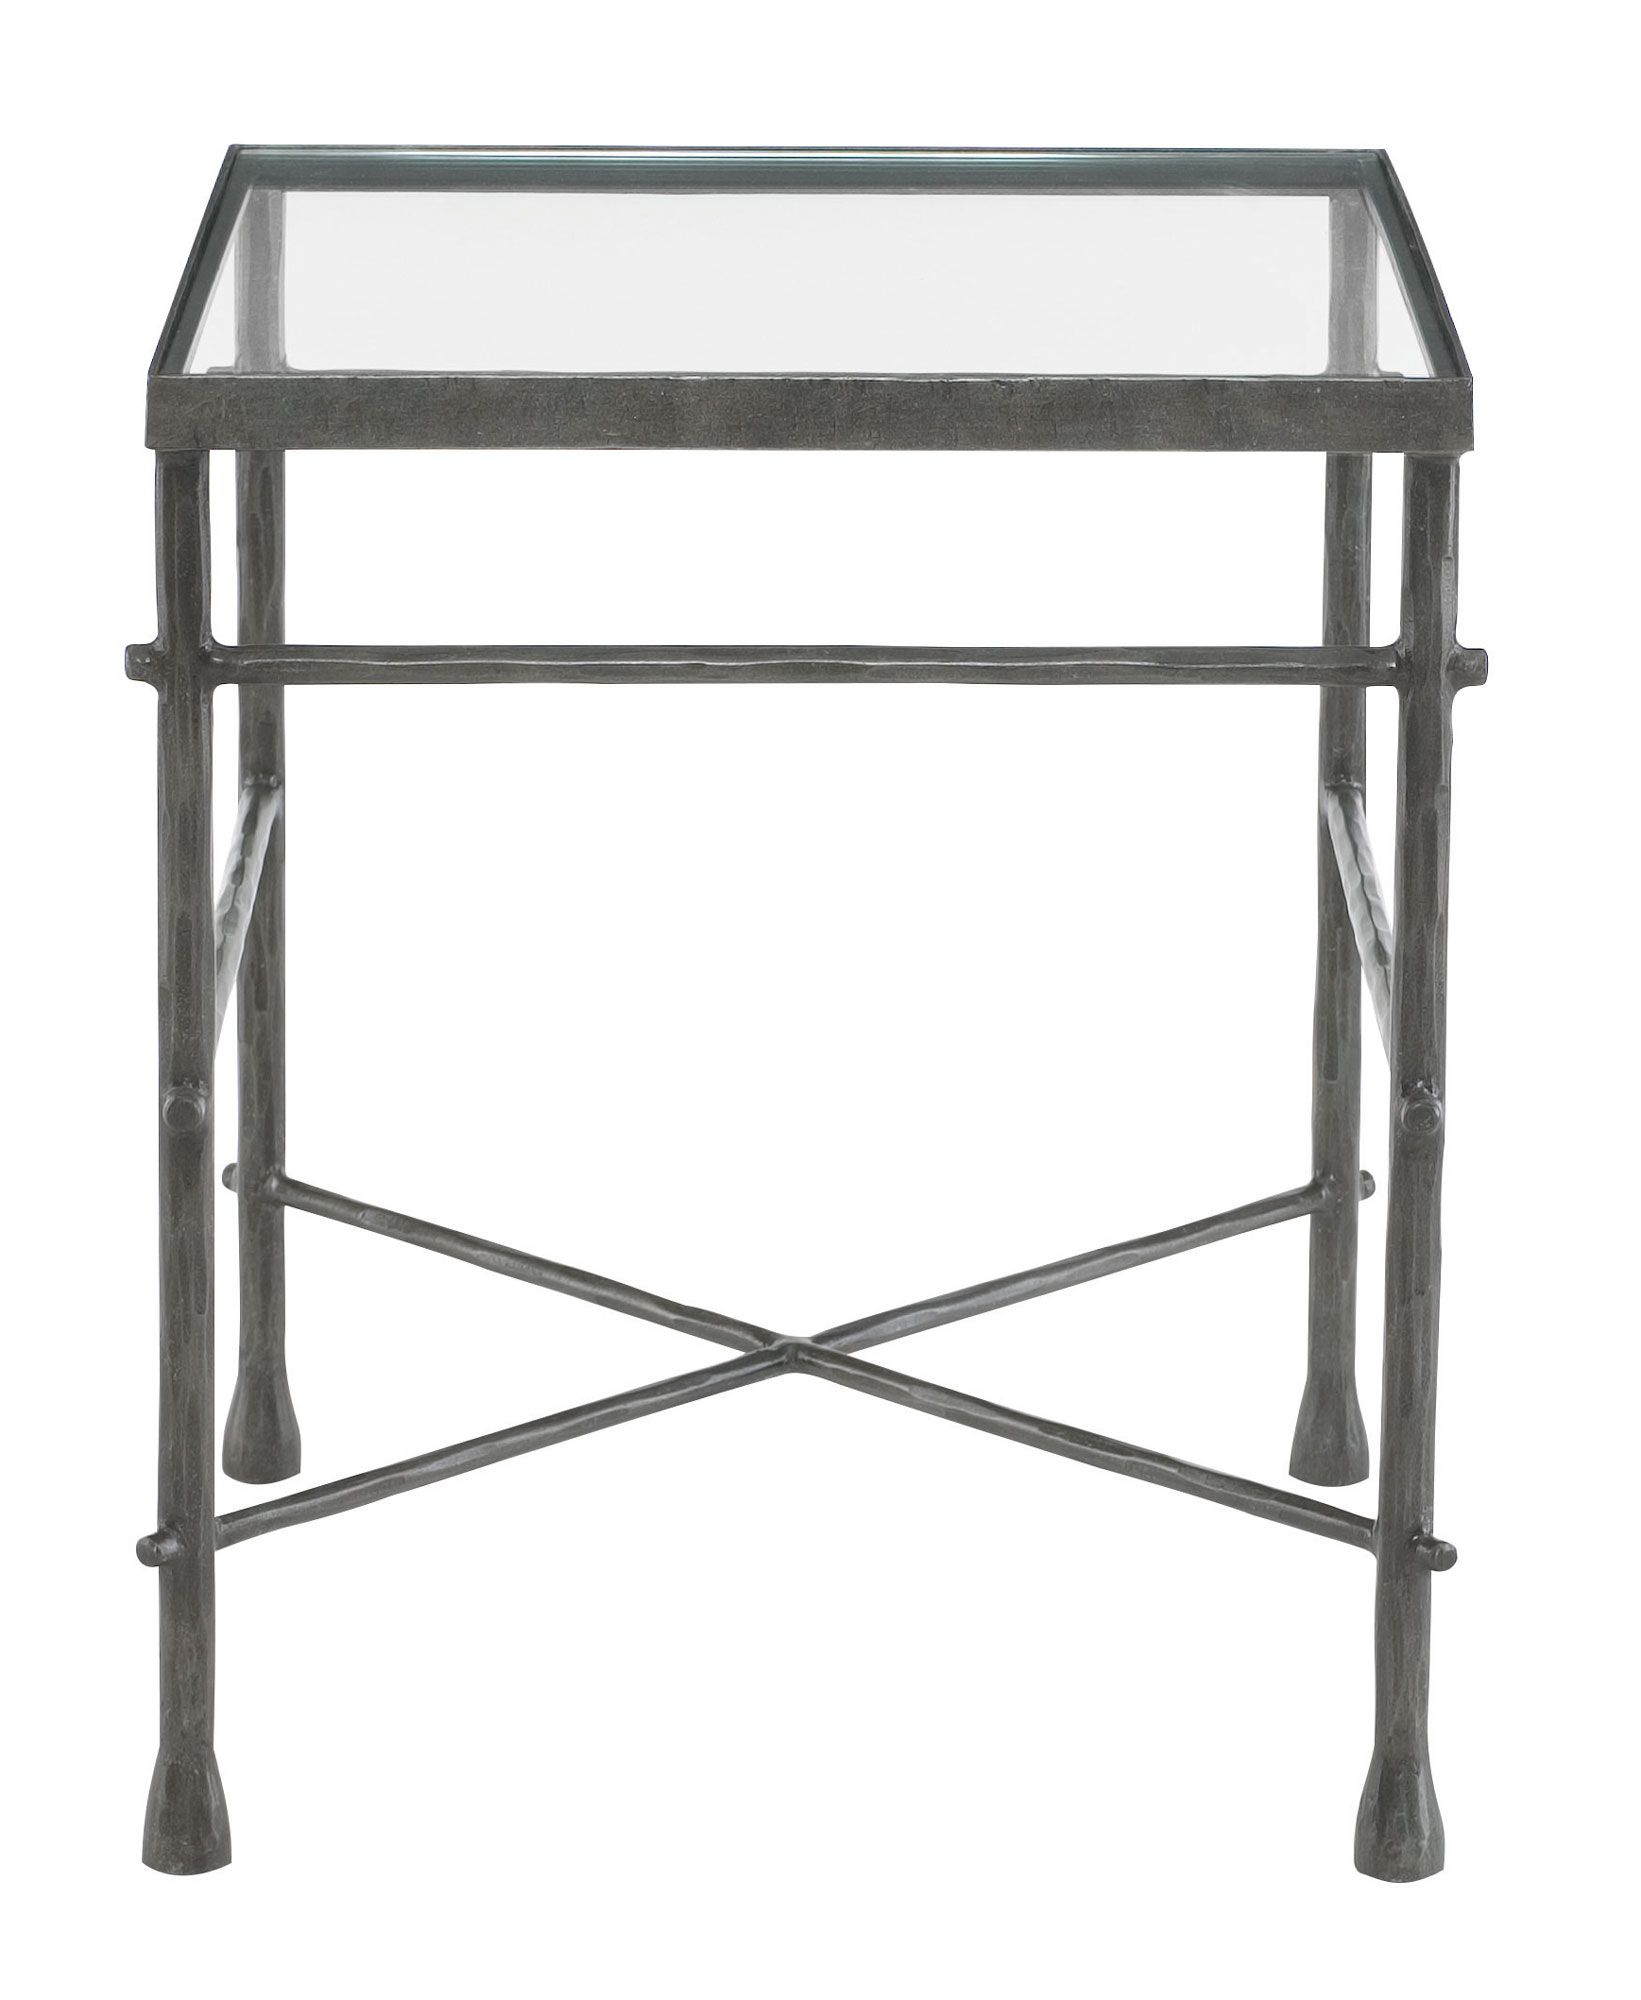 end table glass top and metal base bernhardt iron tables with tops ashley sofa furniture ratings bedroom bedside cabinets house design storage log stump rising coffee bookcase